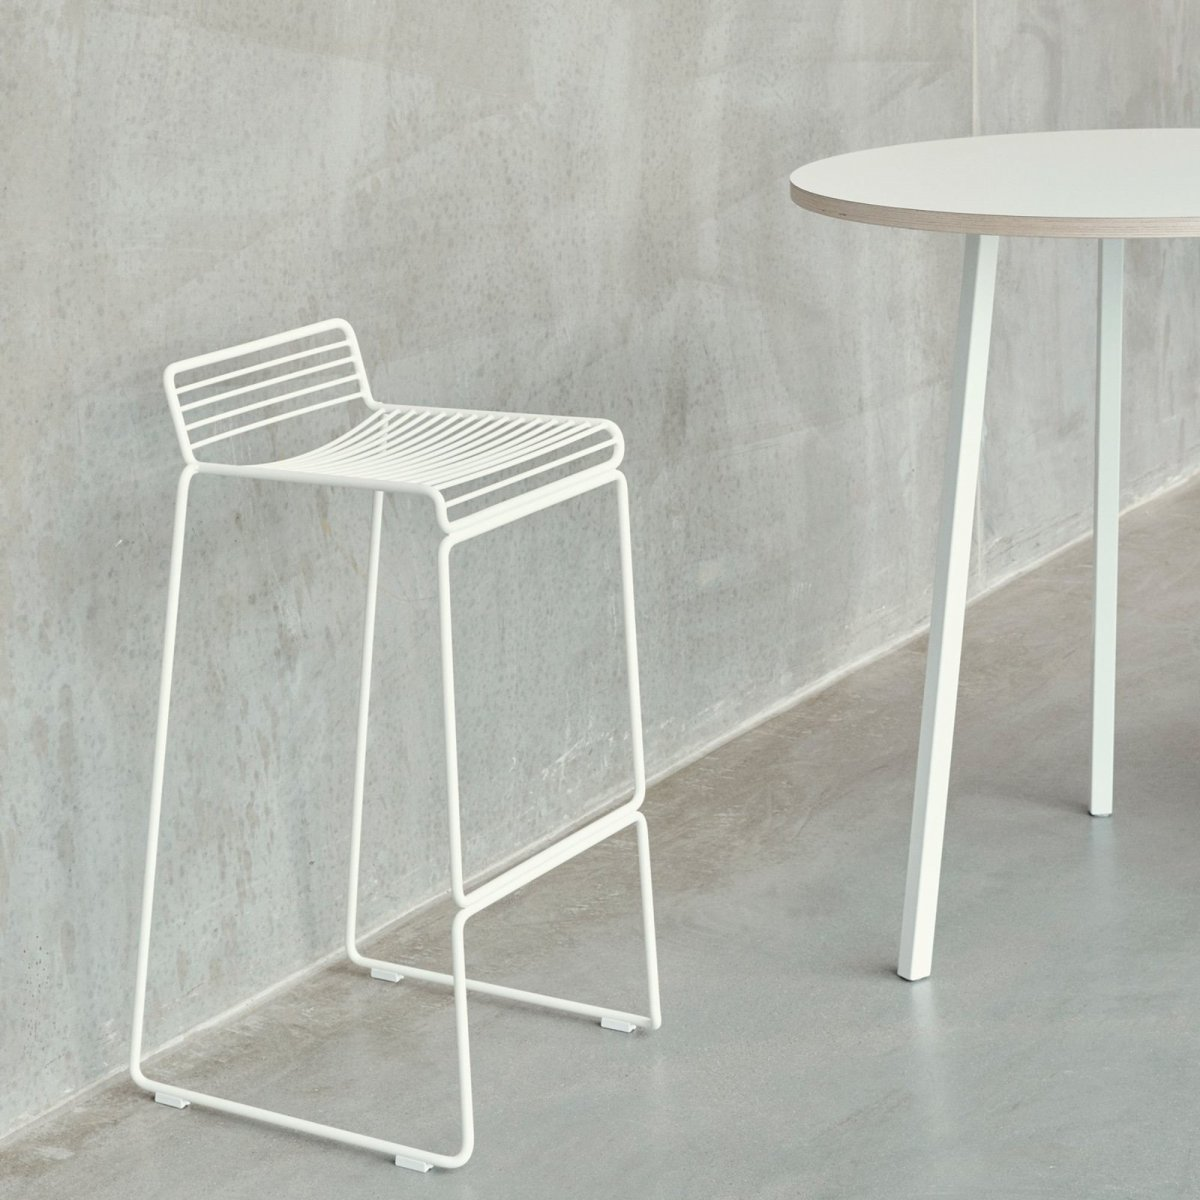 Hee Bar Stool, white.